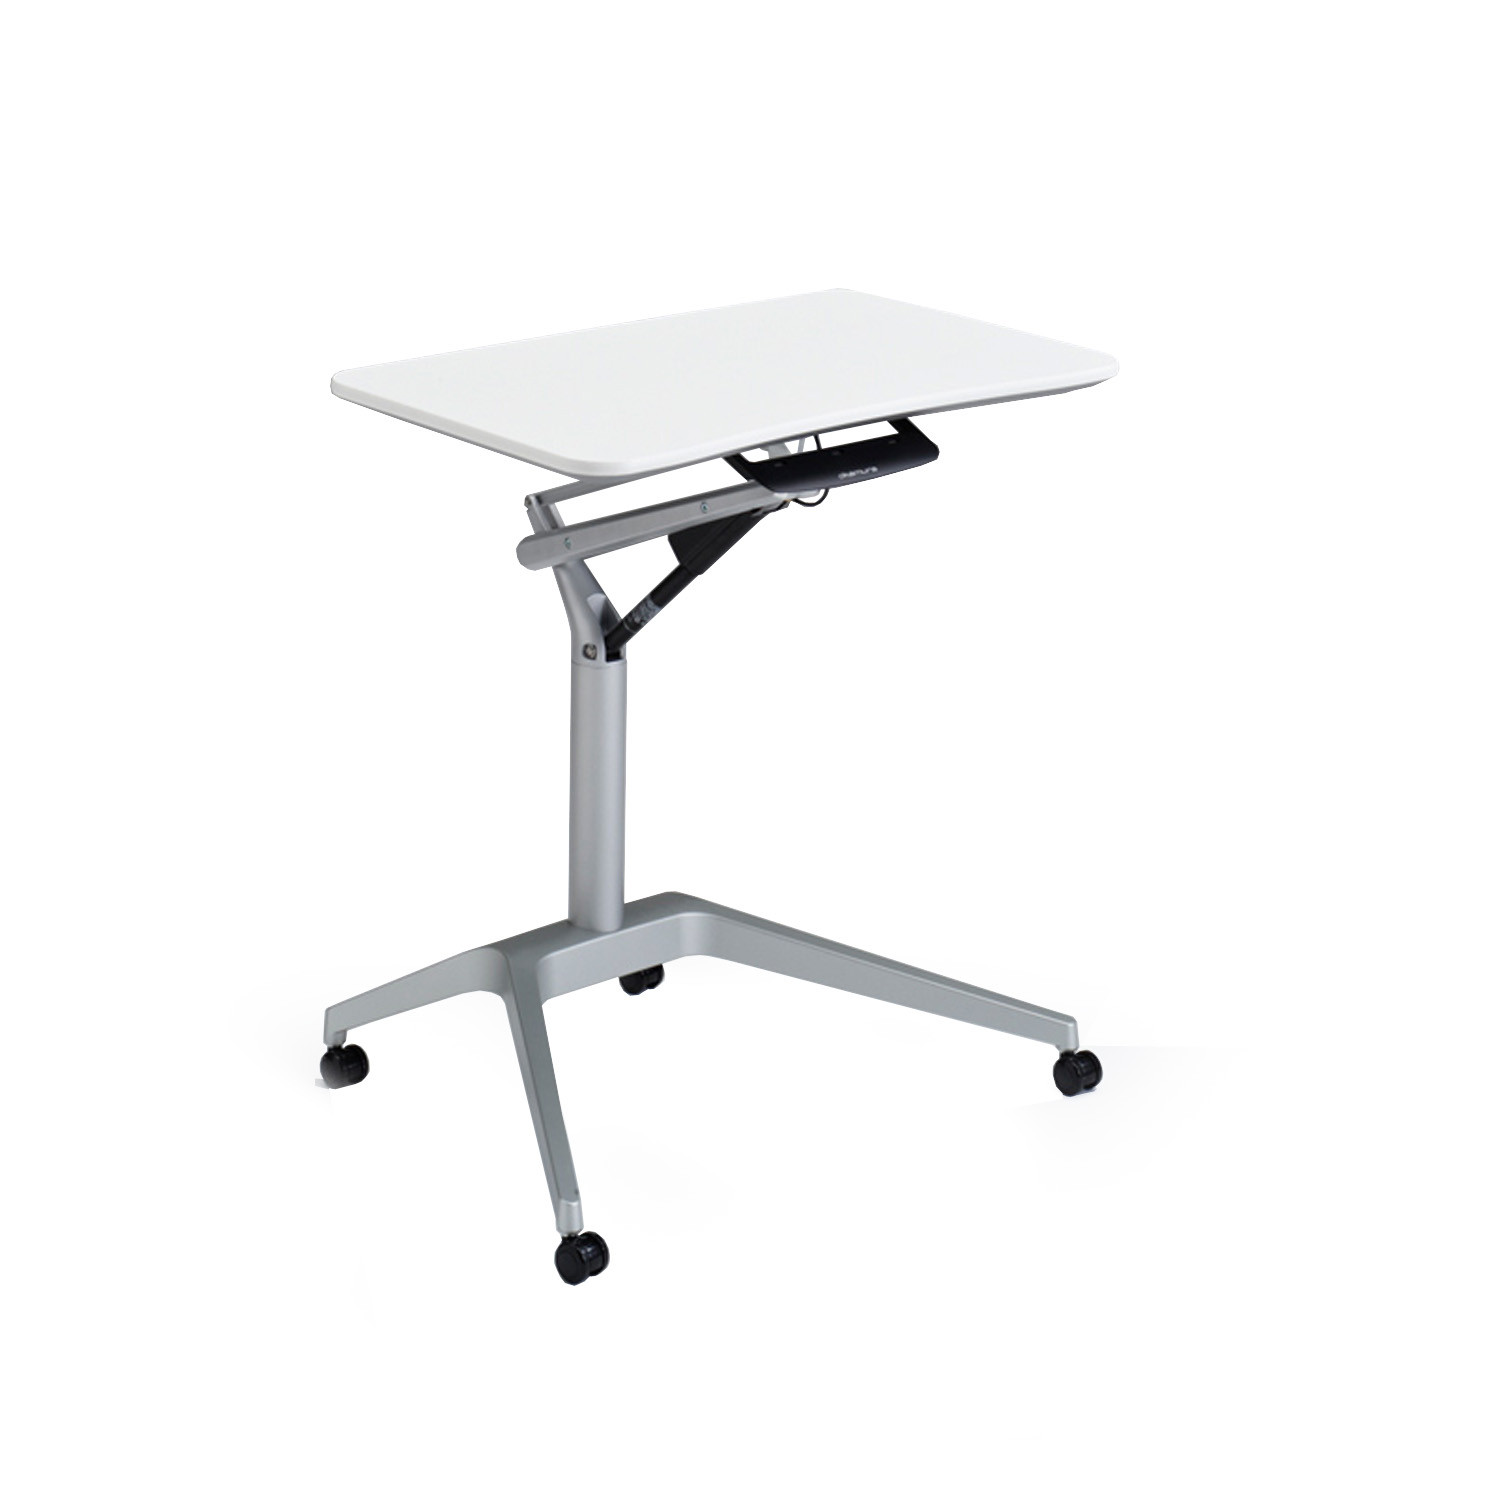 Risefit Adjustable Laptop Table